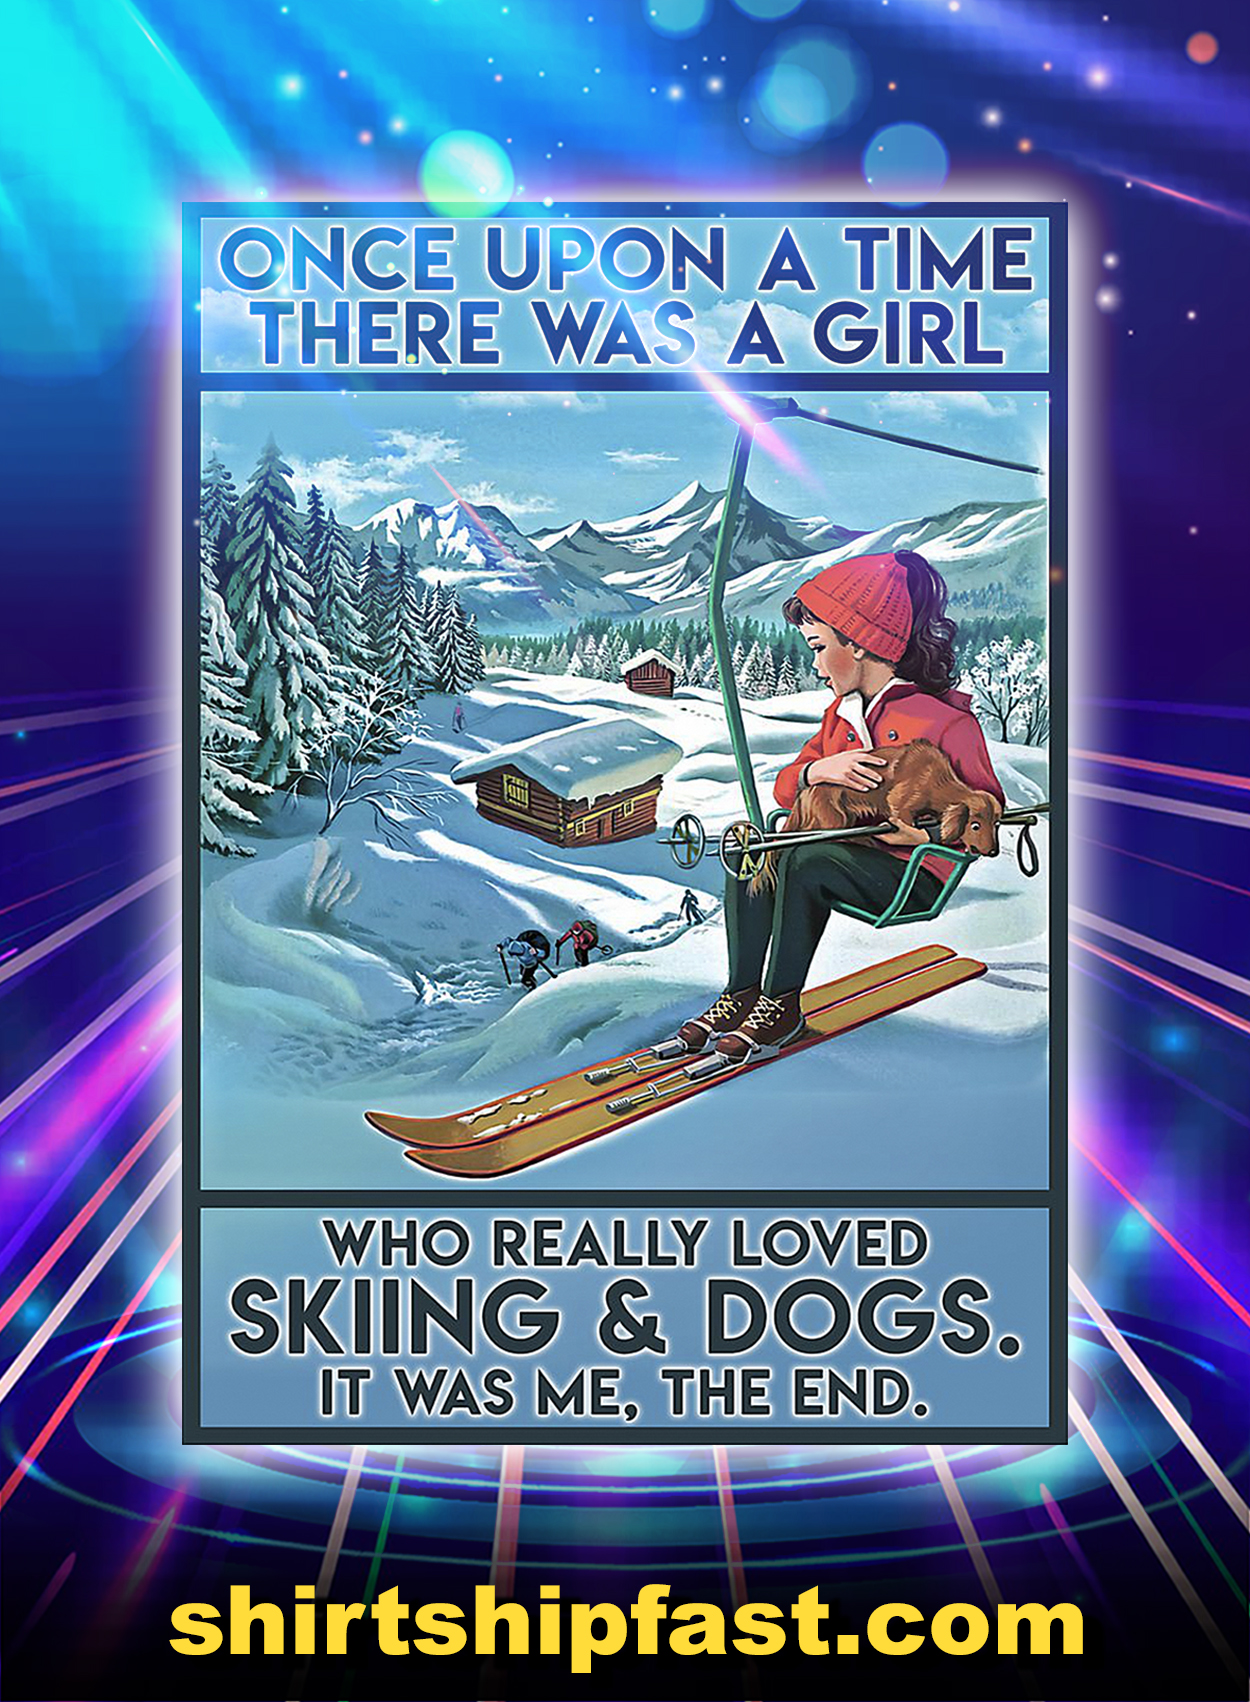 ONCE UPON A TIME THERE WAS A GIRL WHO REALLY LOVED SKIING AND DOGS POSTER - A3